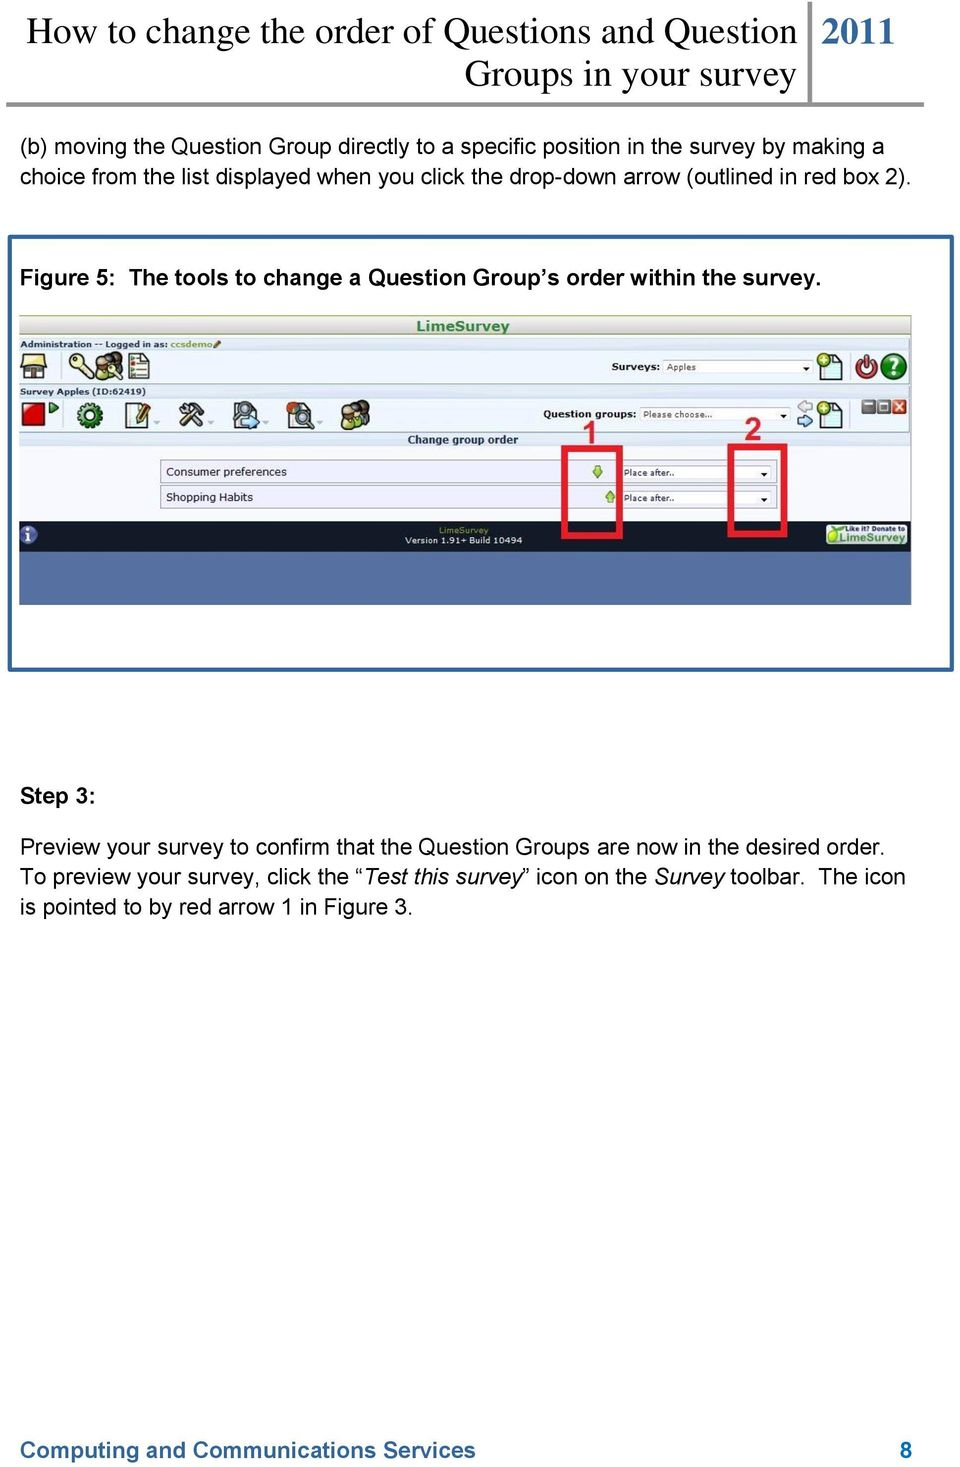 Step 3: Preview your survey to confirm that the Question Groups are now in the desired order.